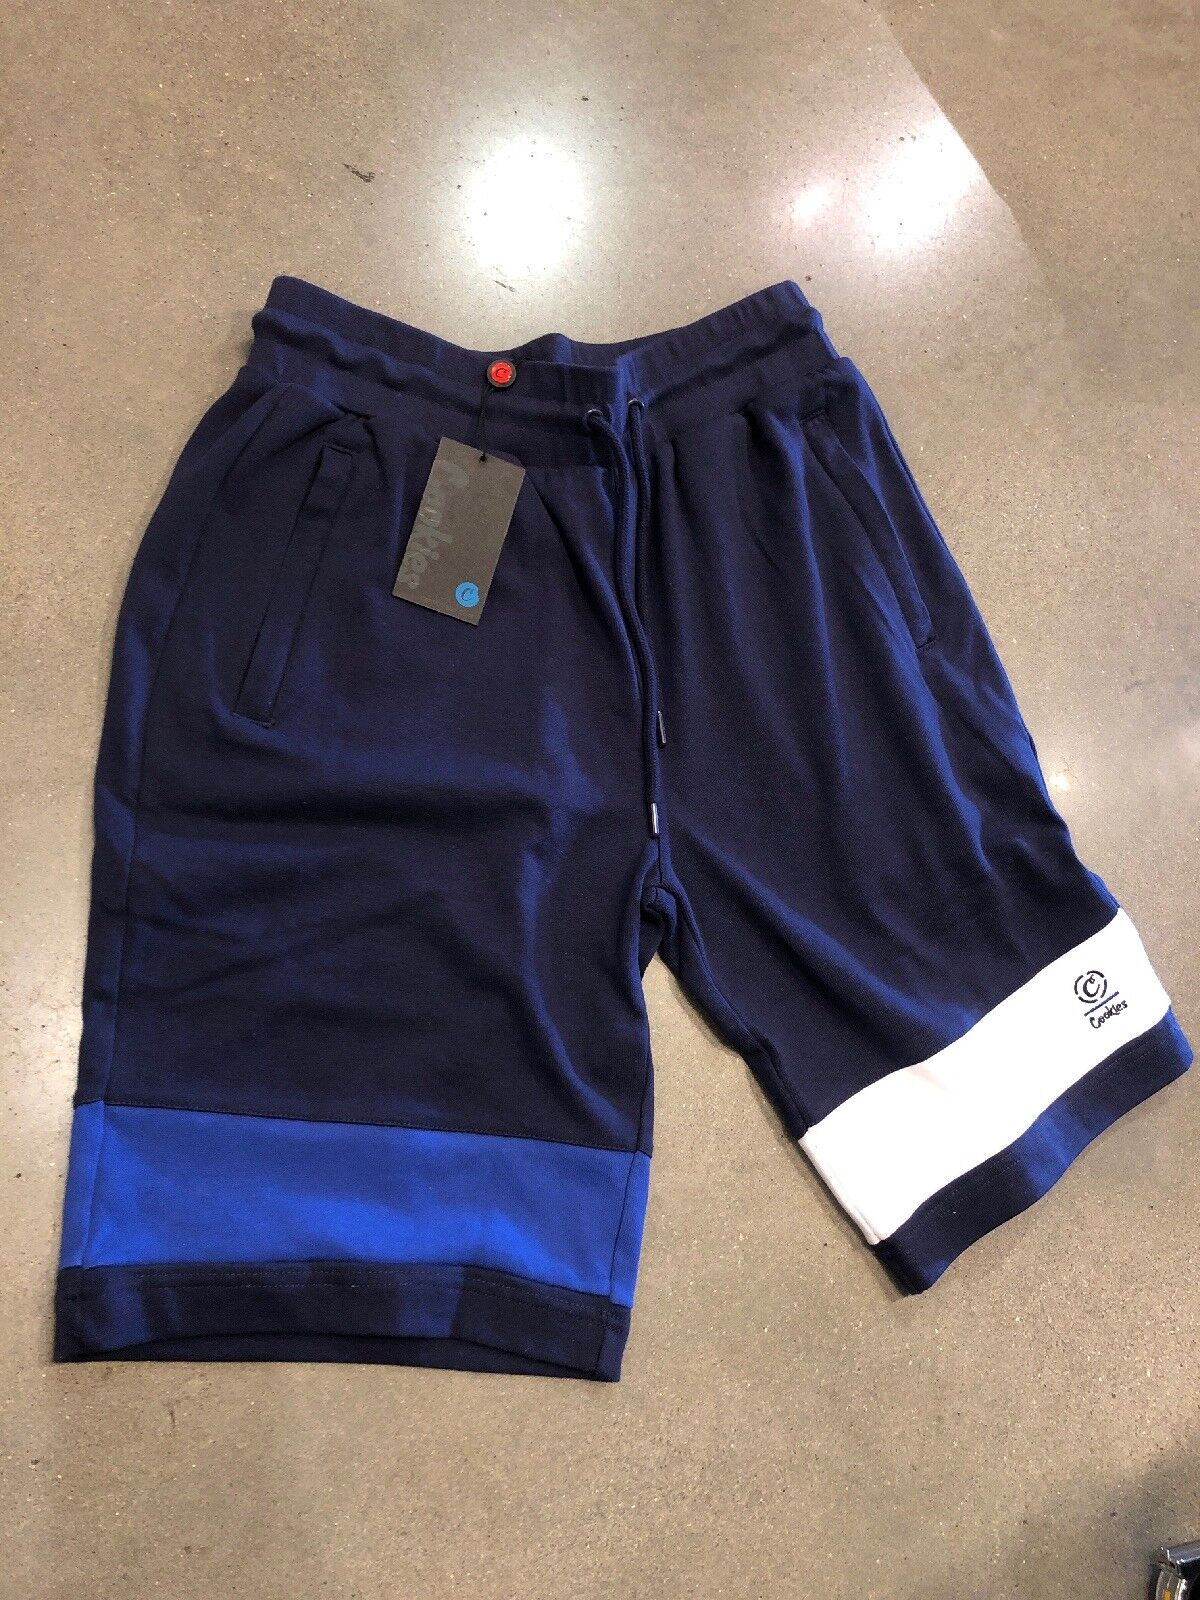 1e8614c23ffc8e Cookies Navy bluee Sweat Shorts 100% No Flaws Size XLarge New With Tags